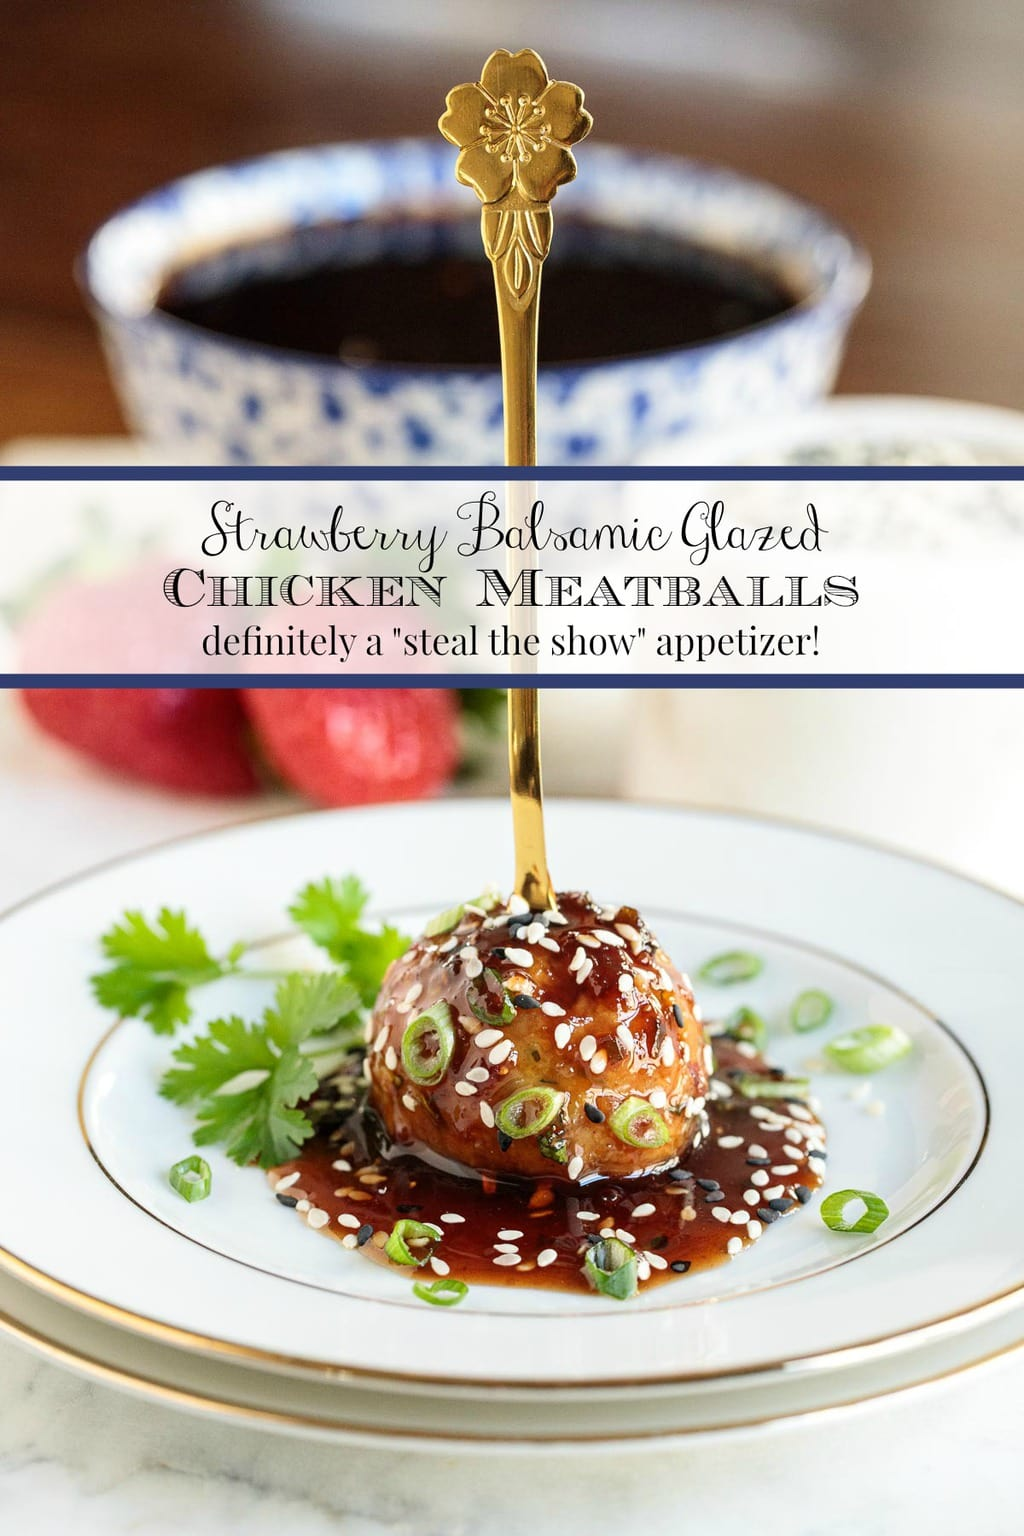 Strawberry Balsamic Glazed Chicken Meatballs The Cafe Sucre Farine